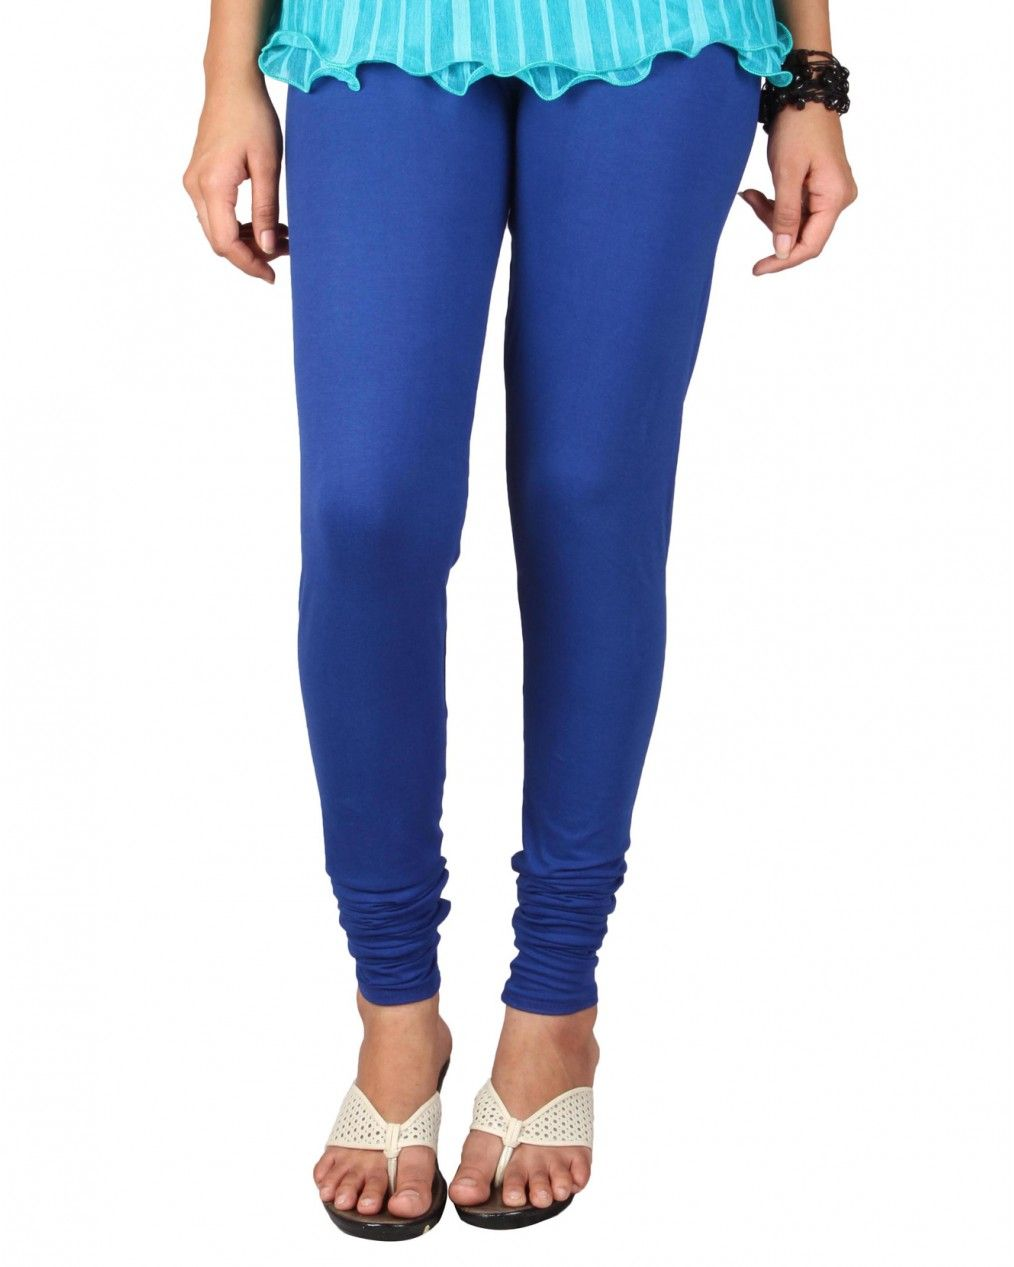 Royal Blue color Leggings | Leggings | Pinterest